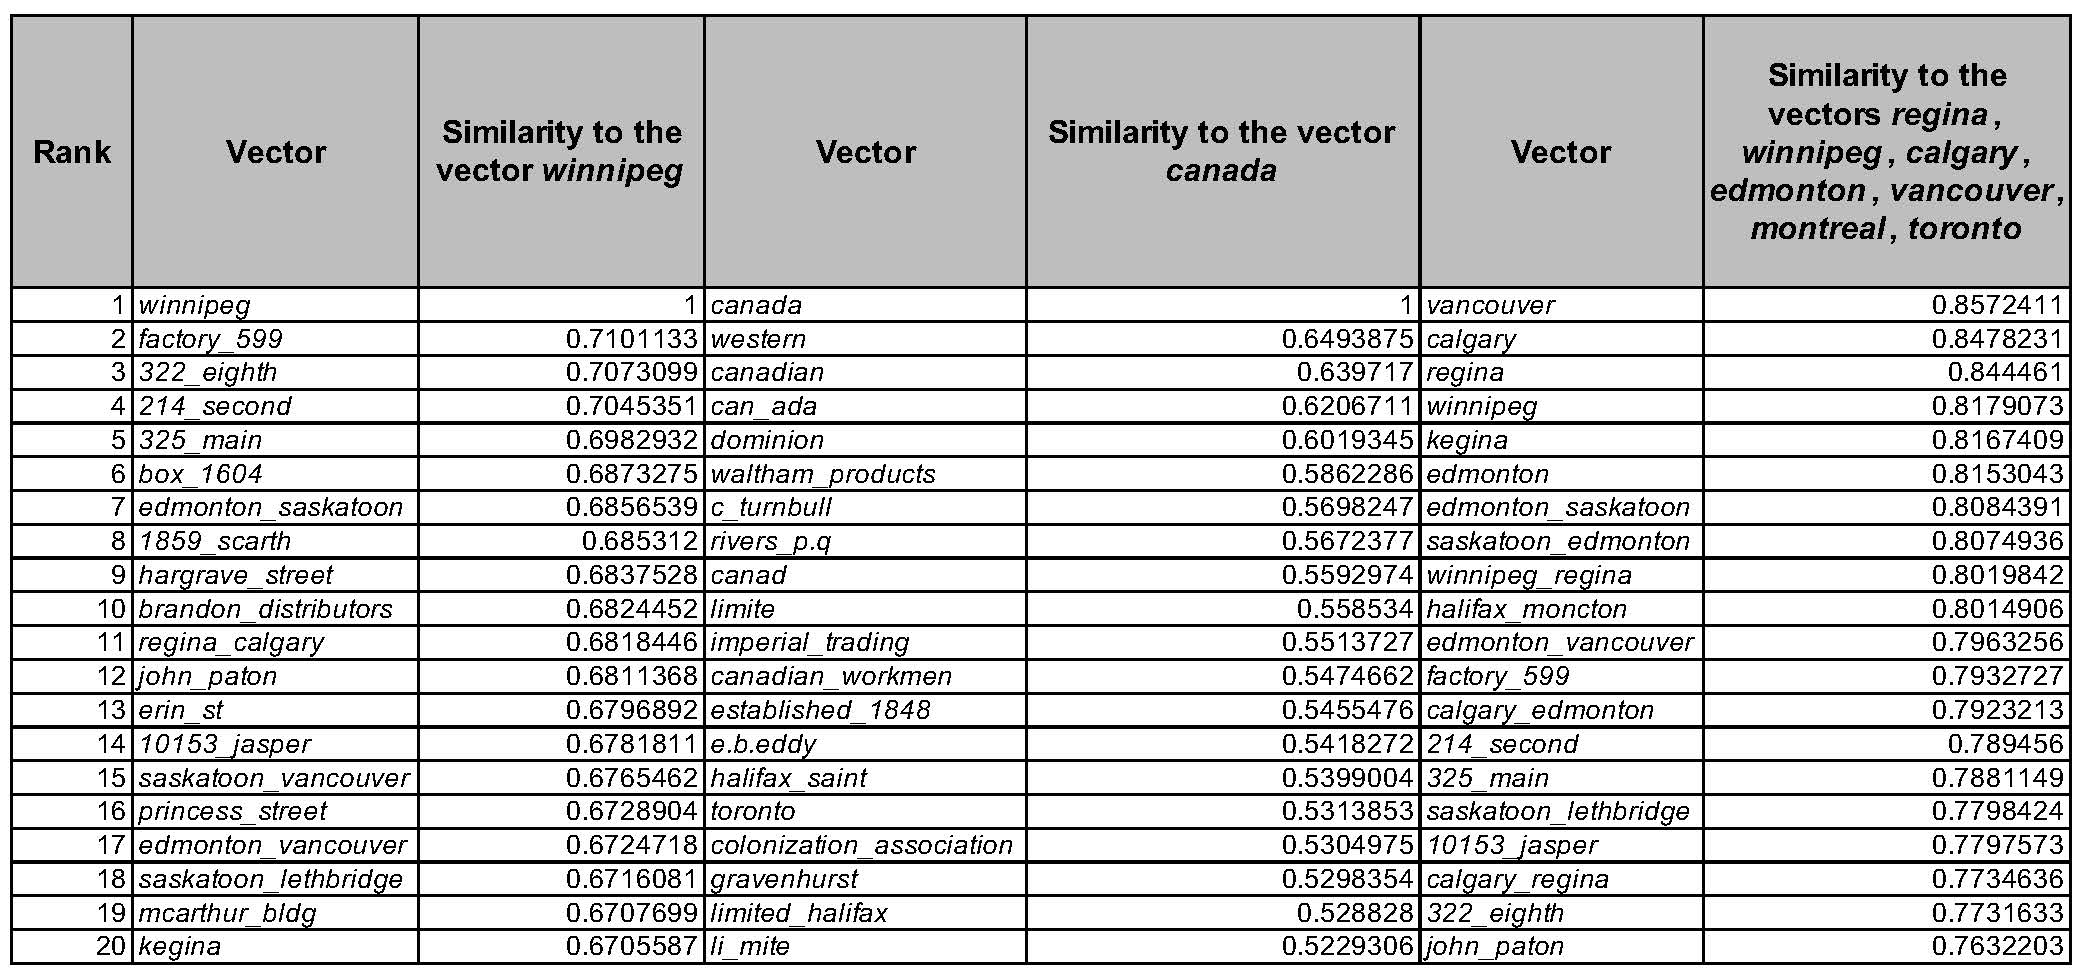 Table showing the top 20 words produced by searching for terms closest to the vectors a) winnipeg, b) canada, and c) regina, winnipeg, calgary, edmonton, vancouver, montreal and toronto.